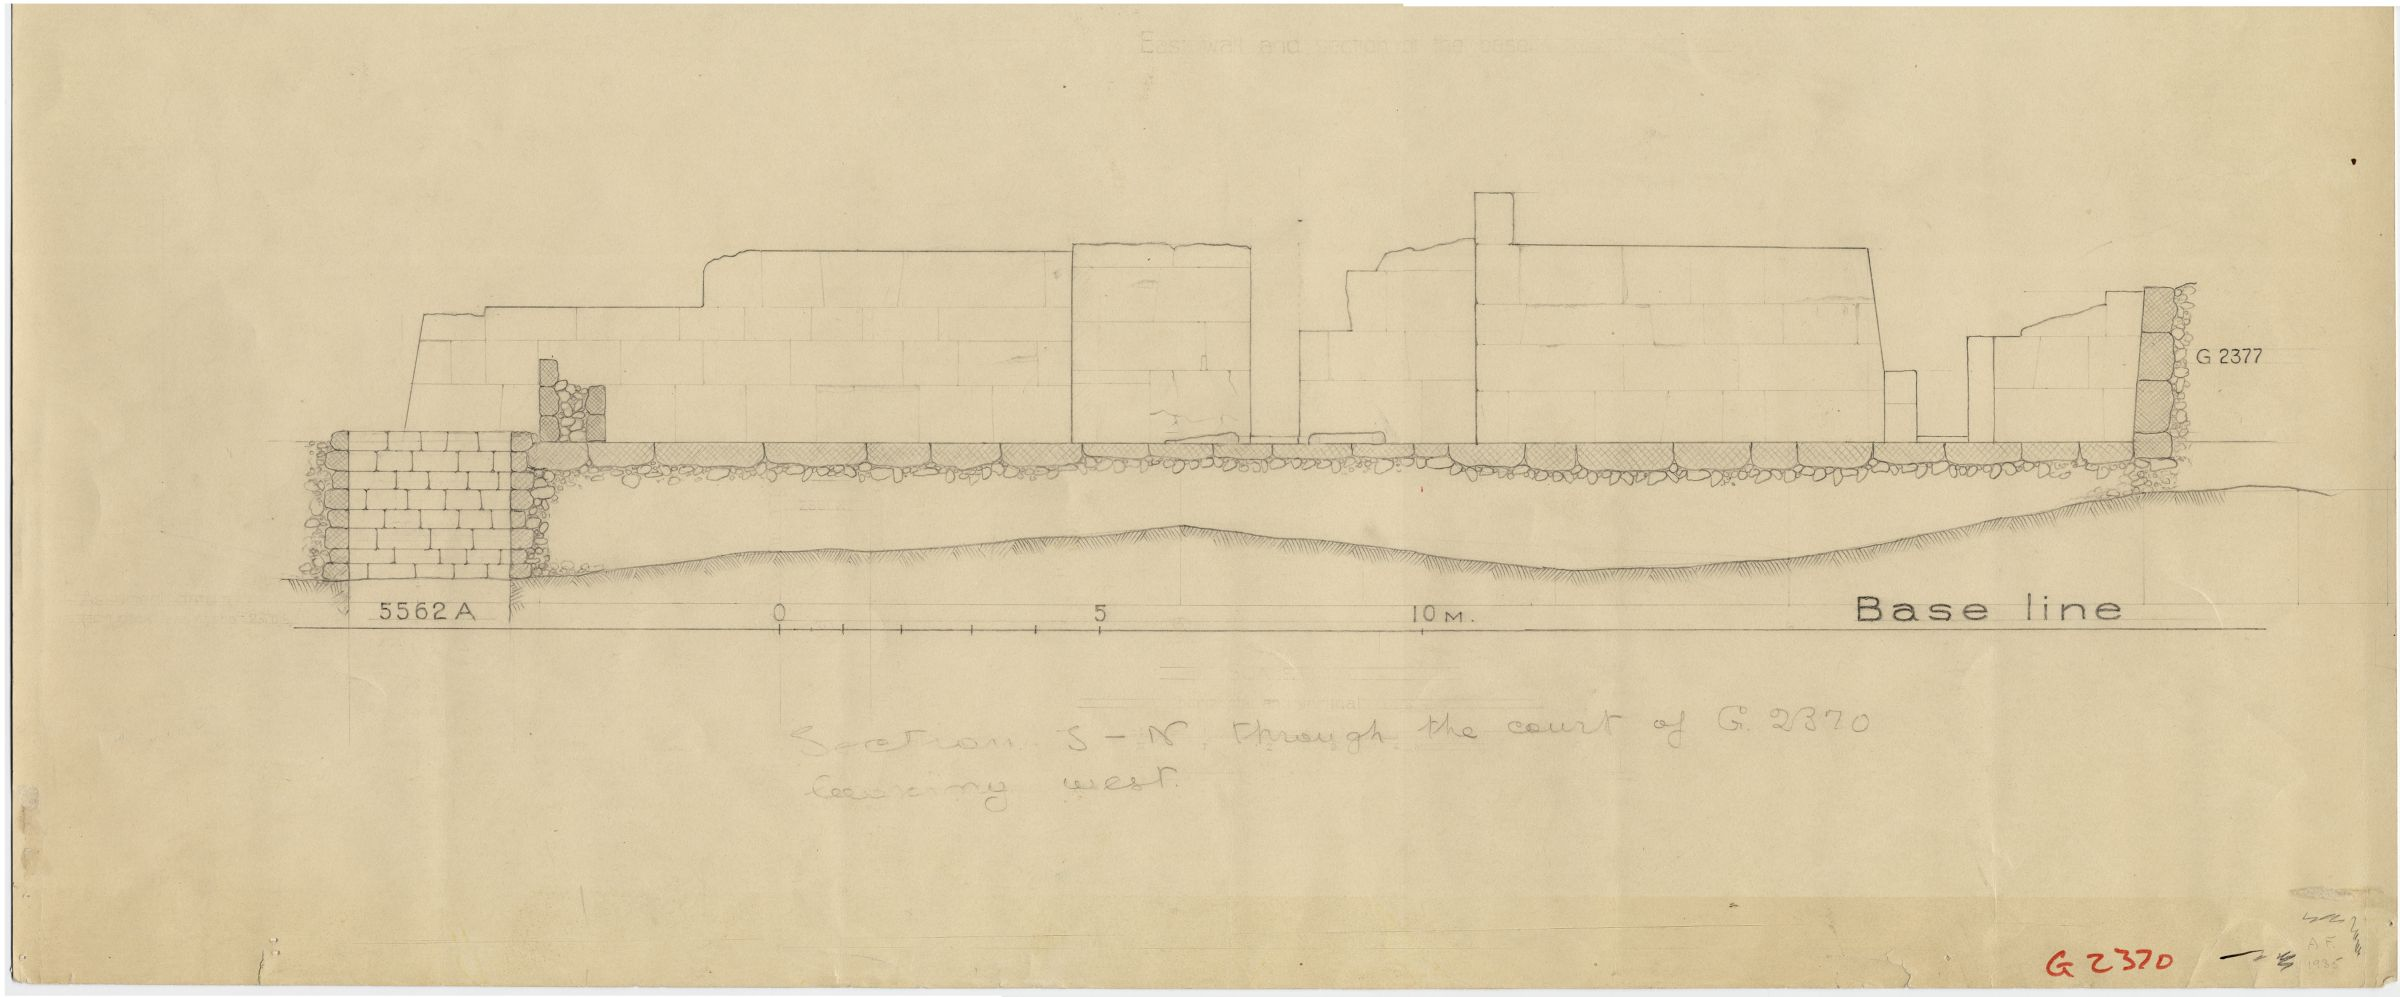 Maps and plans: G 2370, Section of court, with positions of G 5562, Shaft A and G 2377